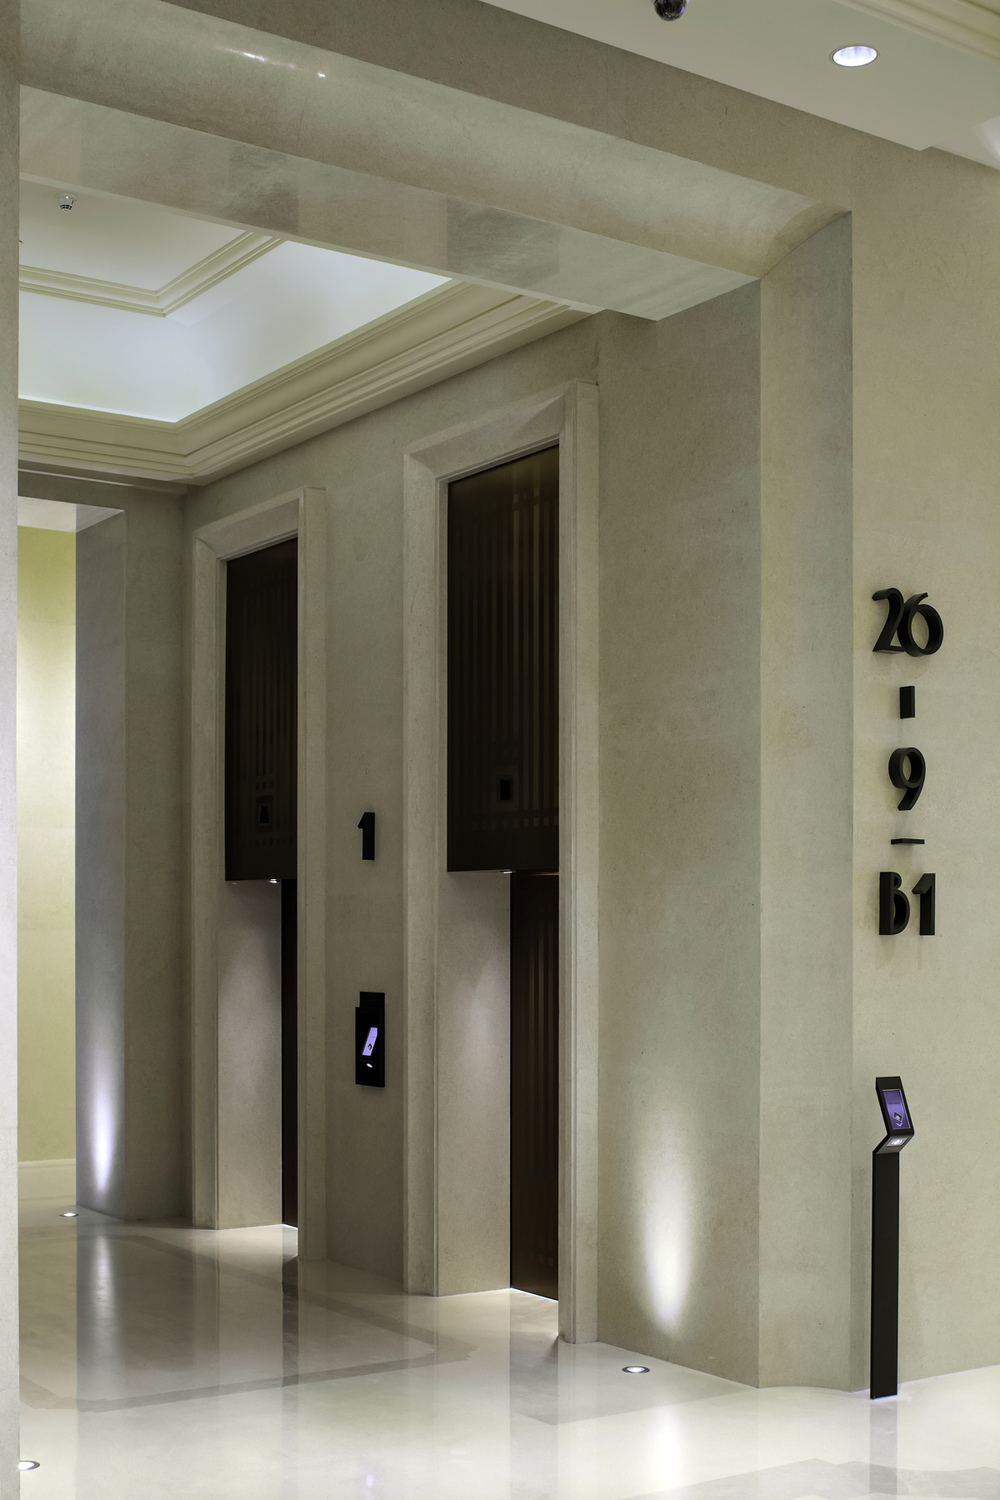 Attitude Asia Interior Design Luxury Commercial interior by Suzanne Wong Verdant Place Shanghai